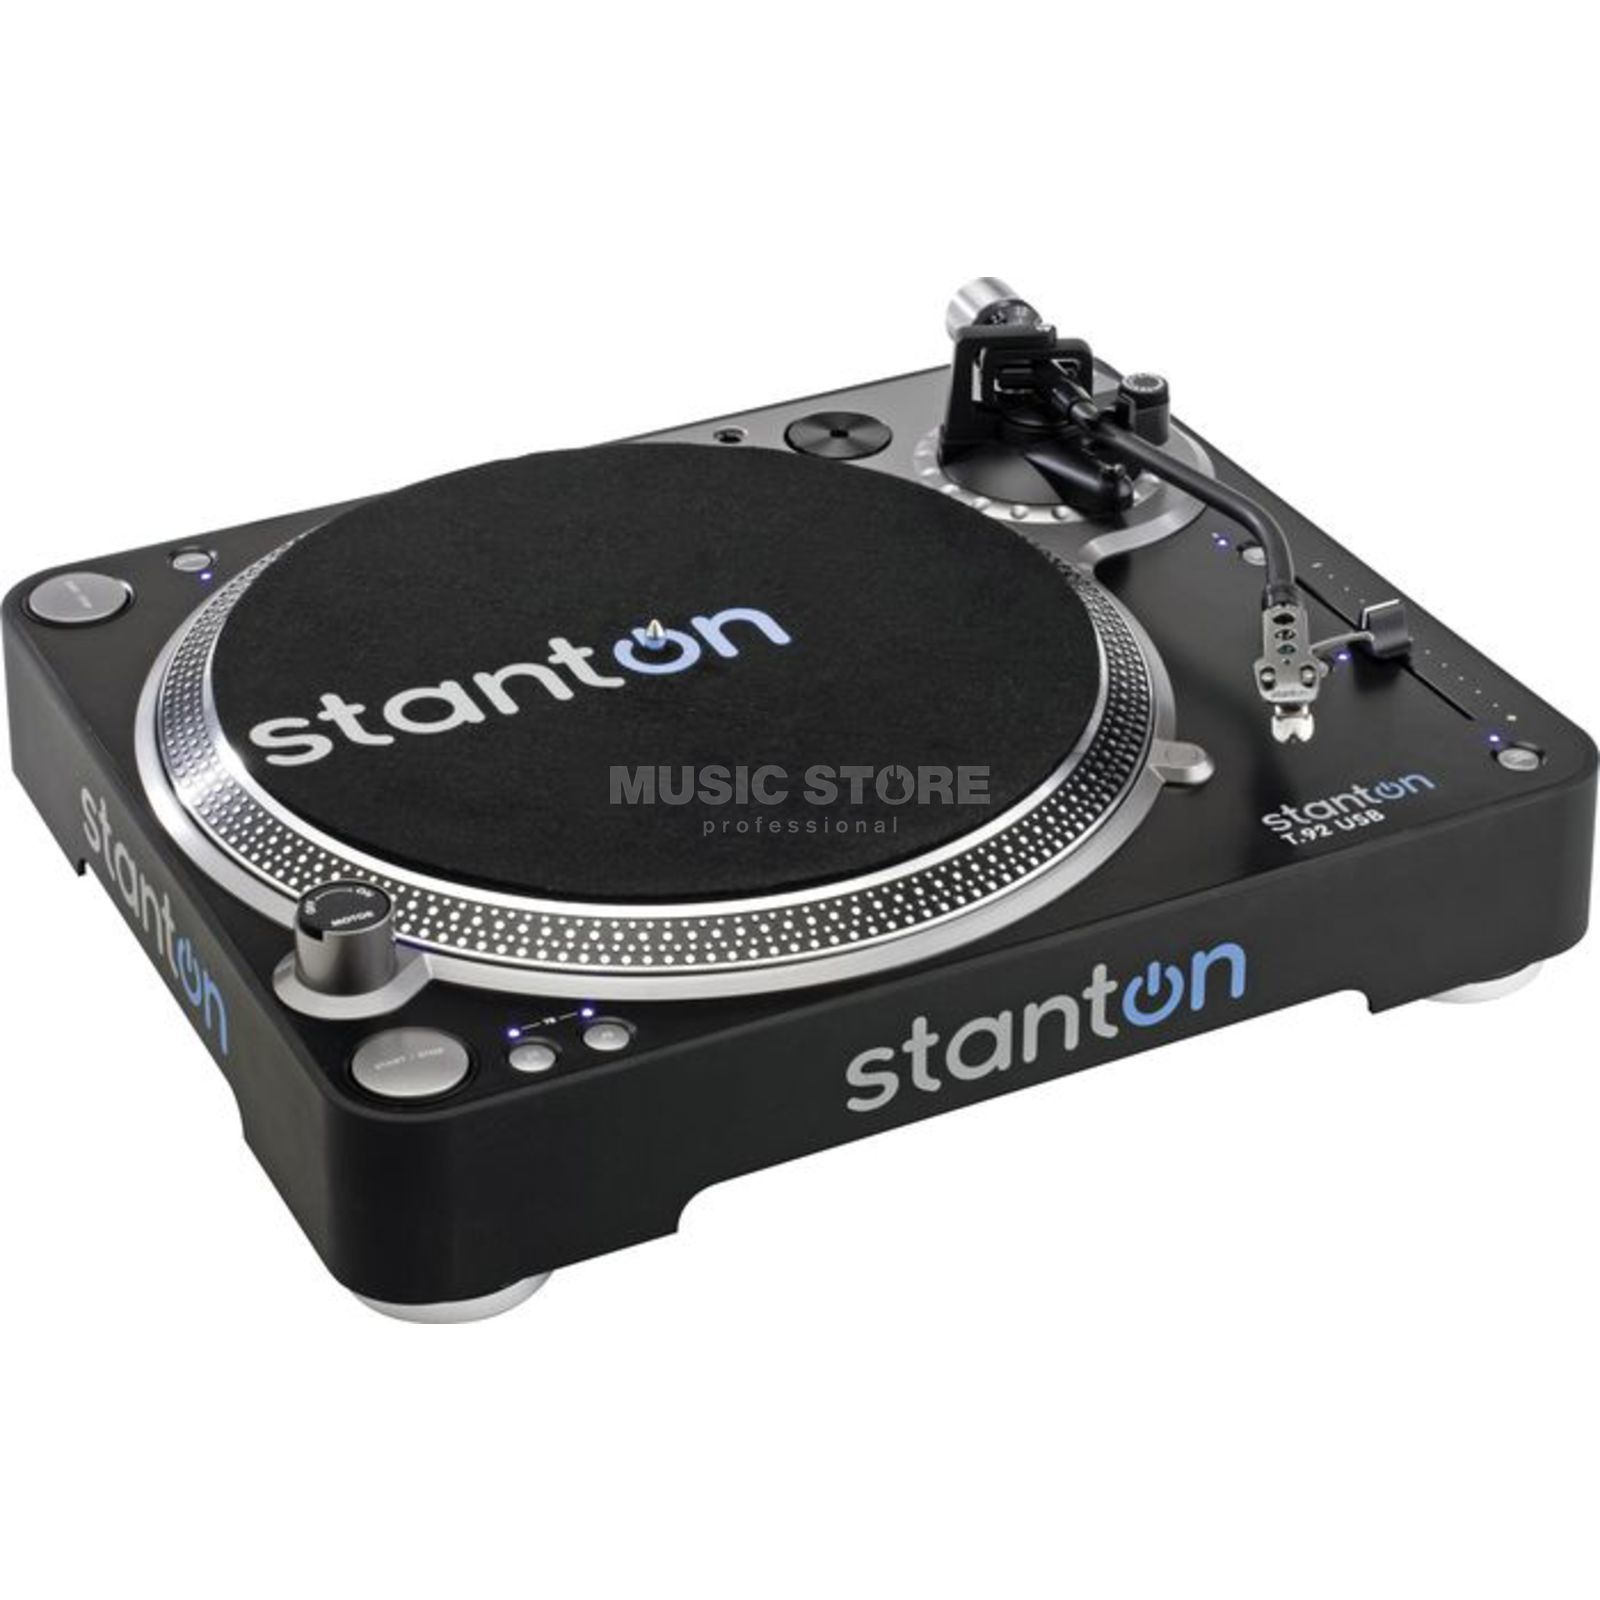 Stanton T.92 USB Turntable incl. Cakewalk Pyro 5 Software Product Image